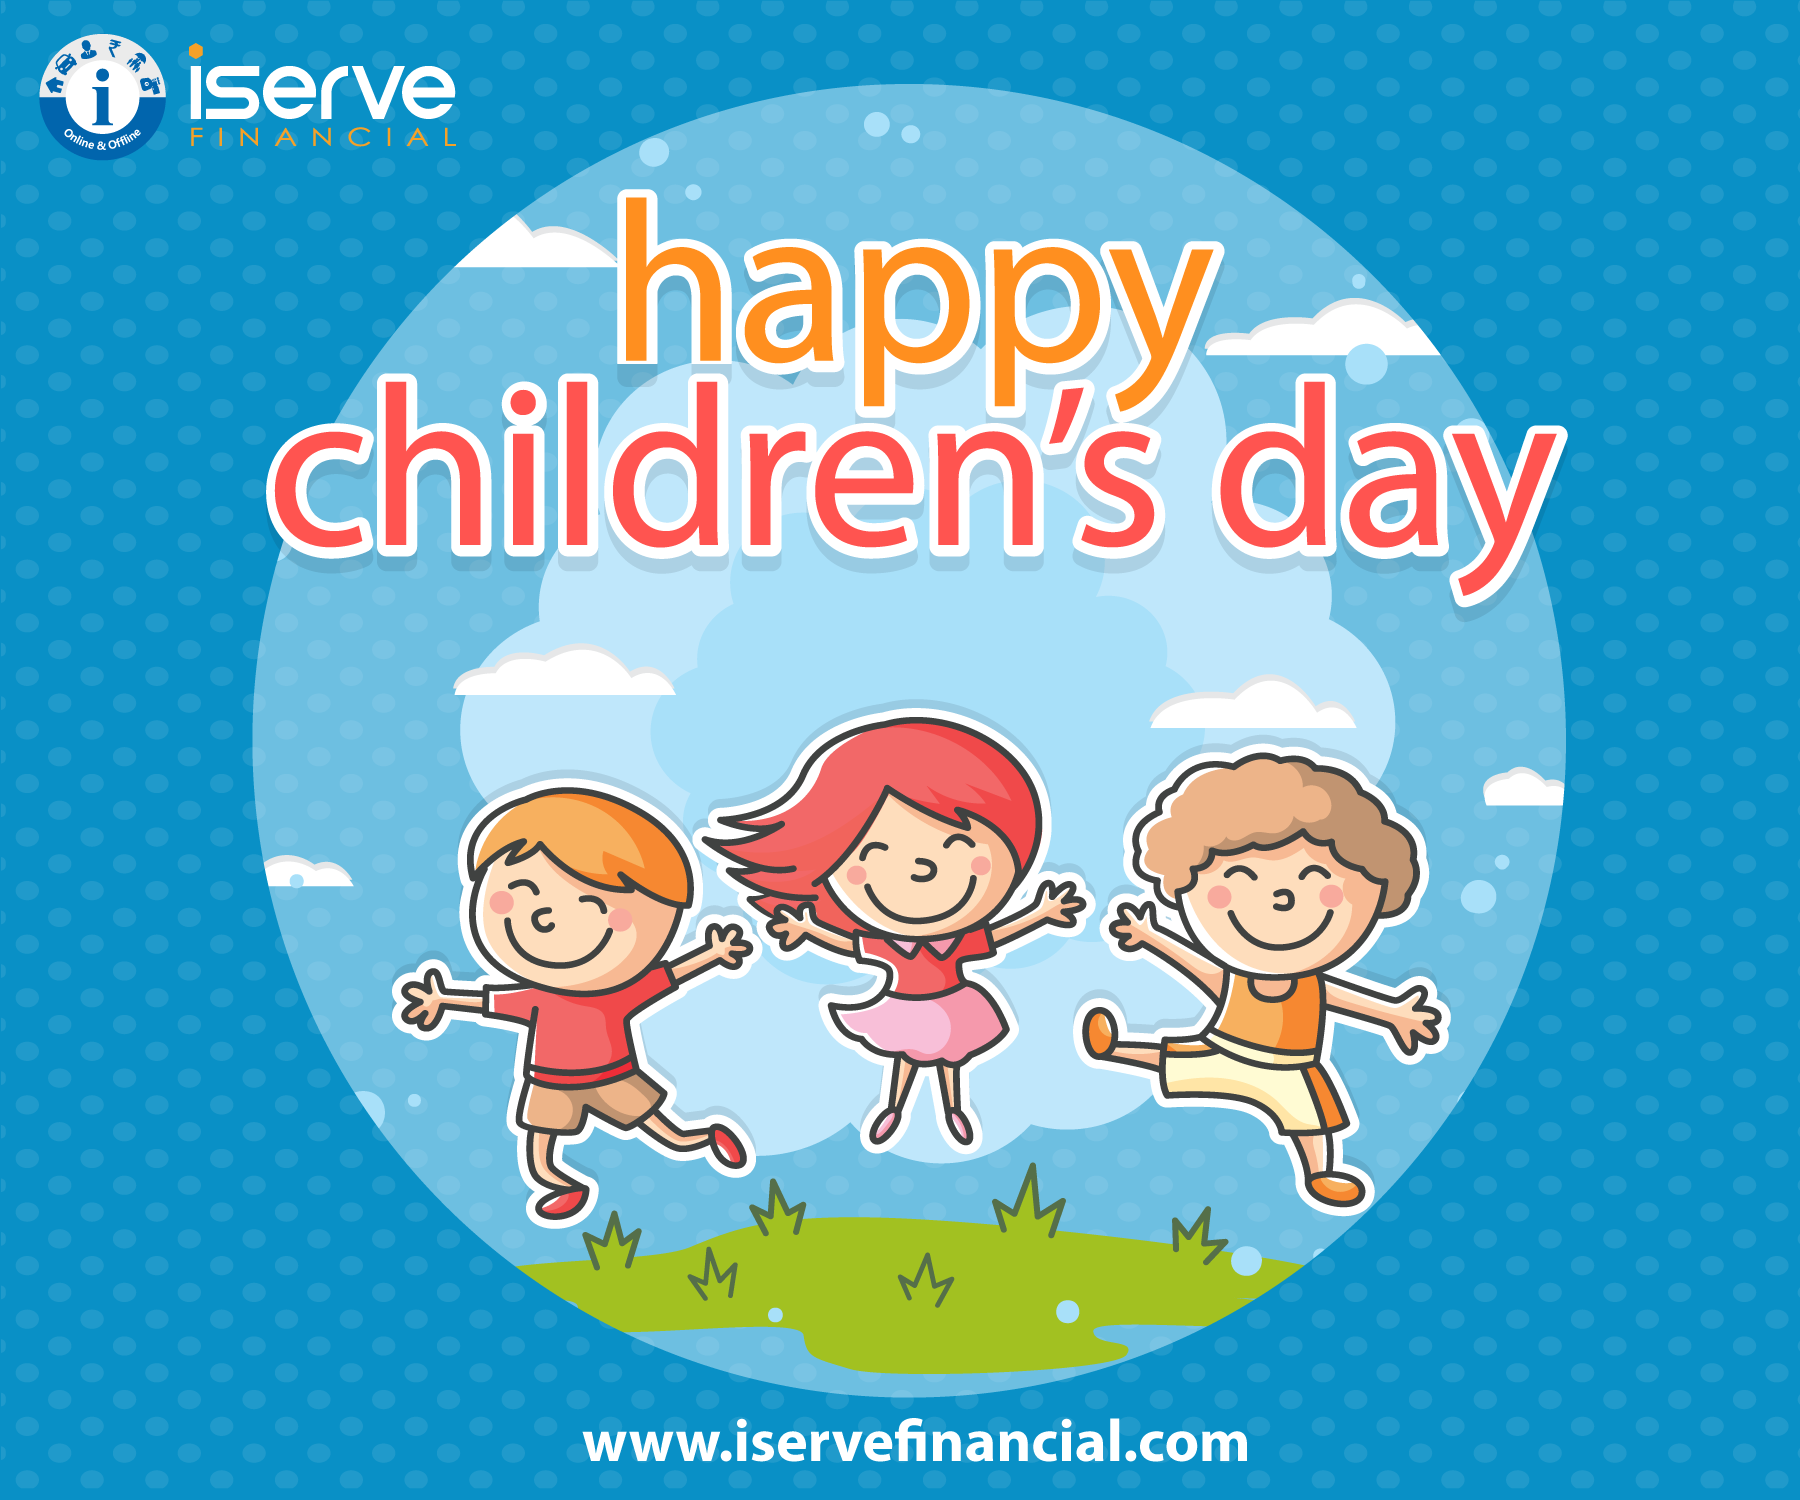 Happy Childrensday On This Day Embrace The Child In You And Live Life To The Fullest Livelikeachild Mo Instant Loans Online Finance Goals Instant Loans